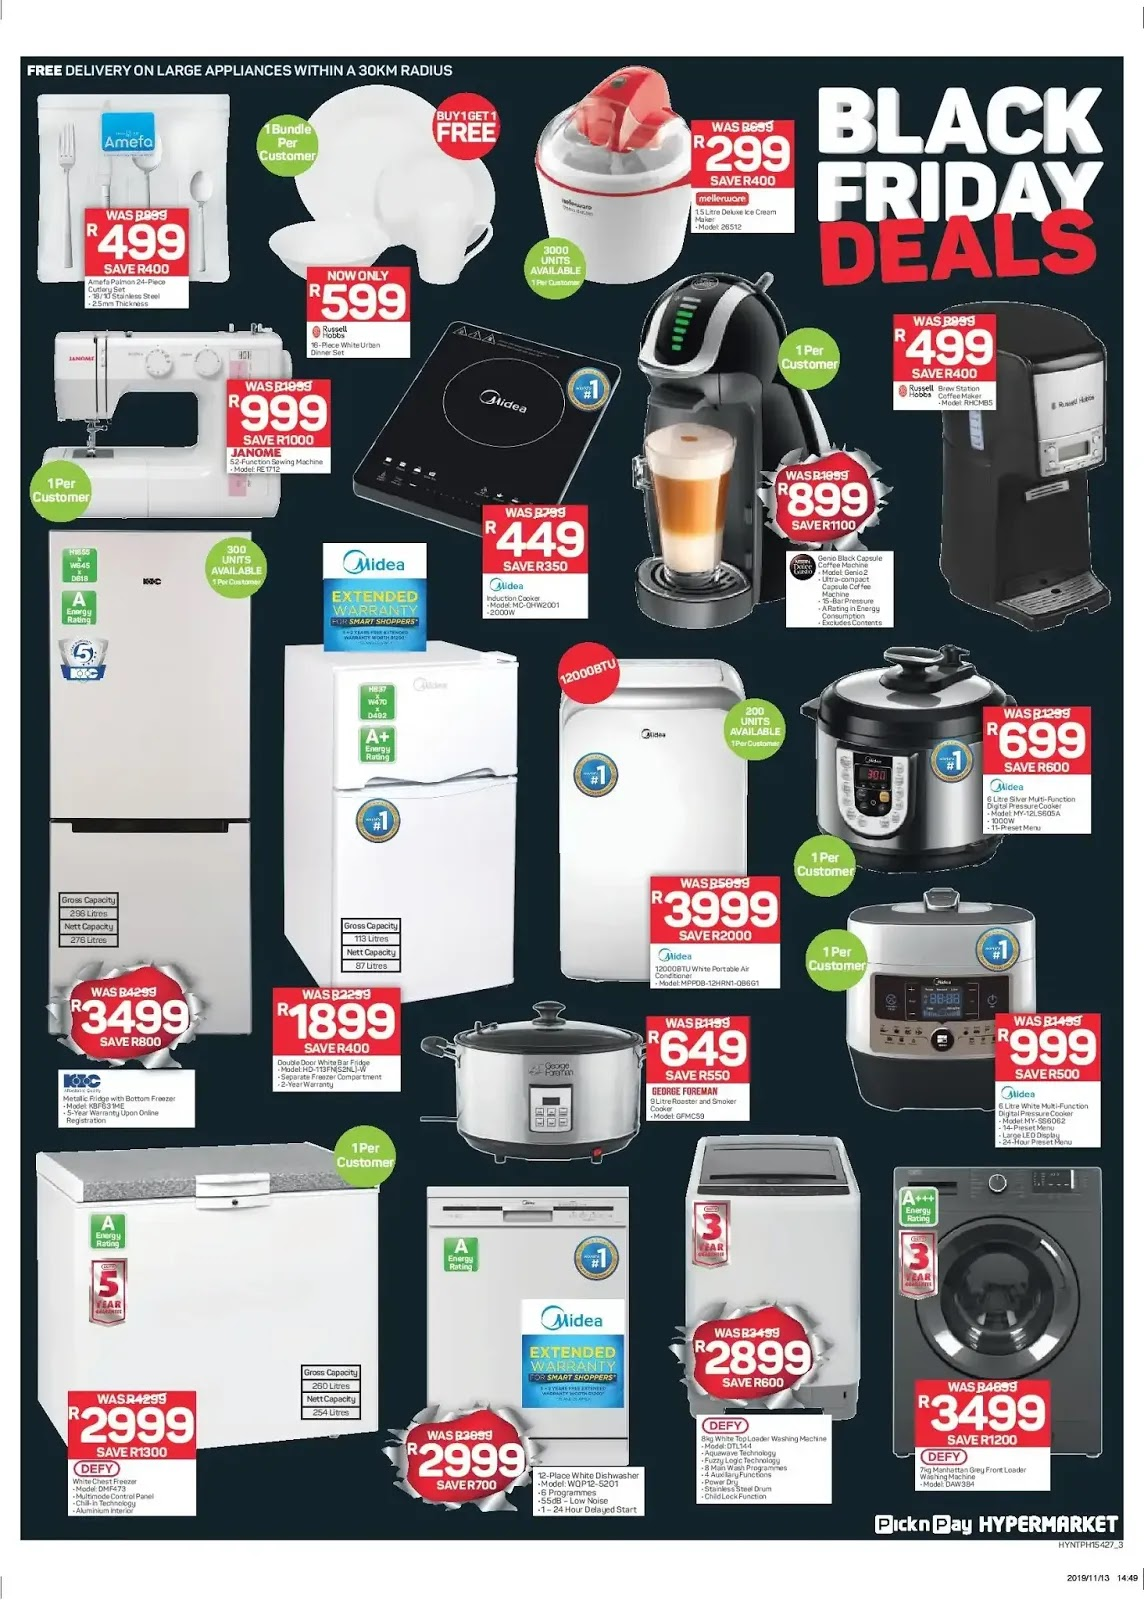 Pick n Pay Hypermarkets Black Friday deals - Page 4